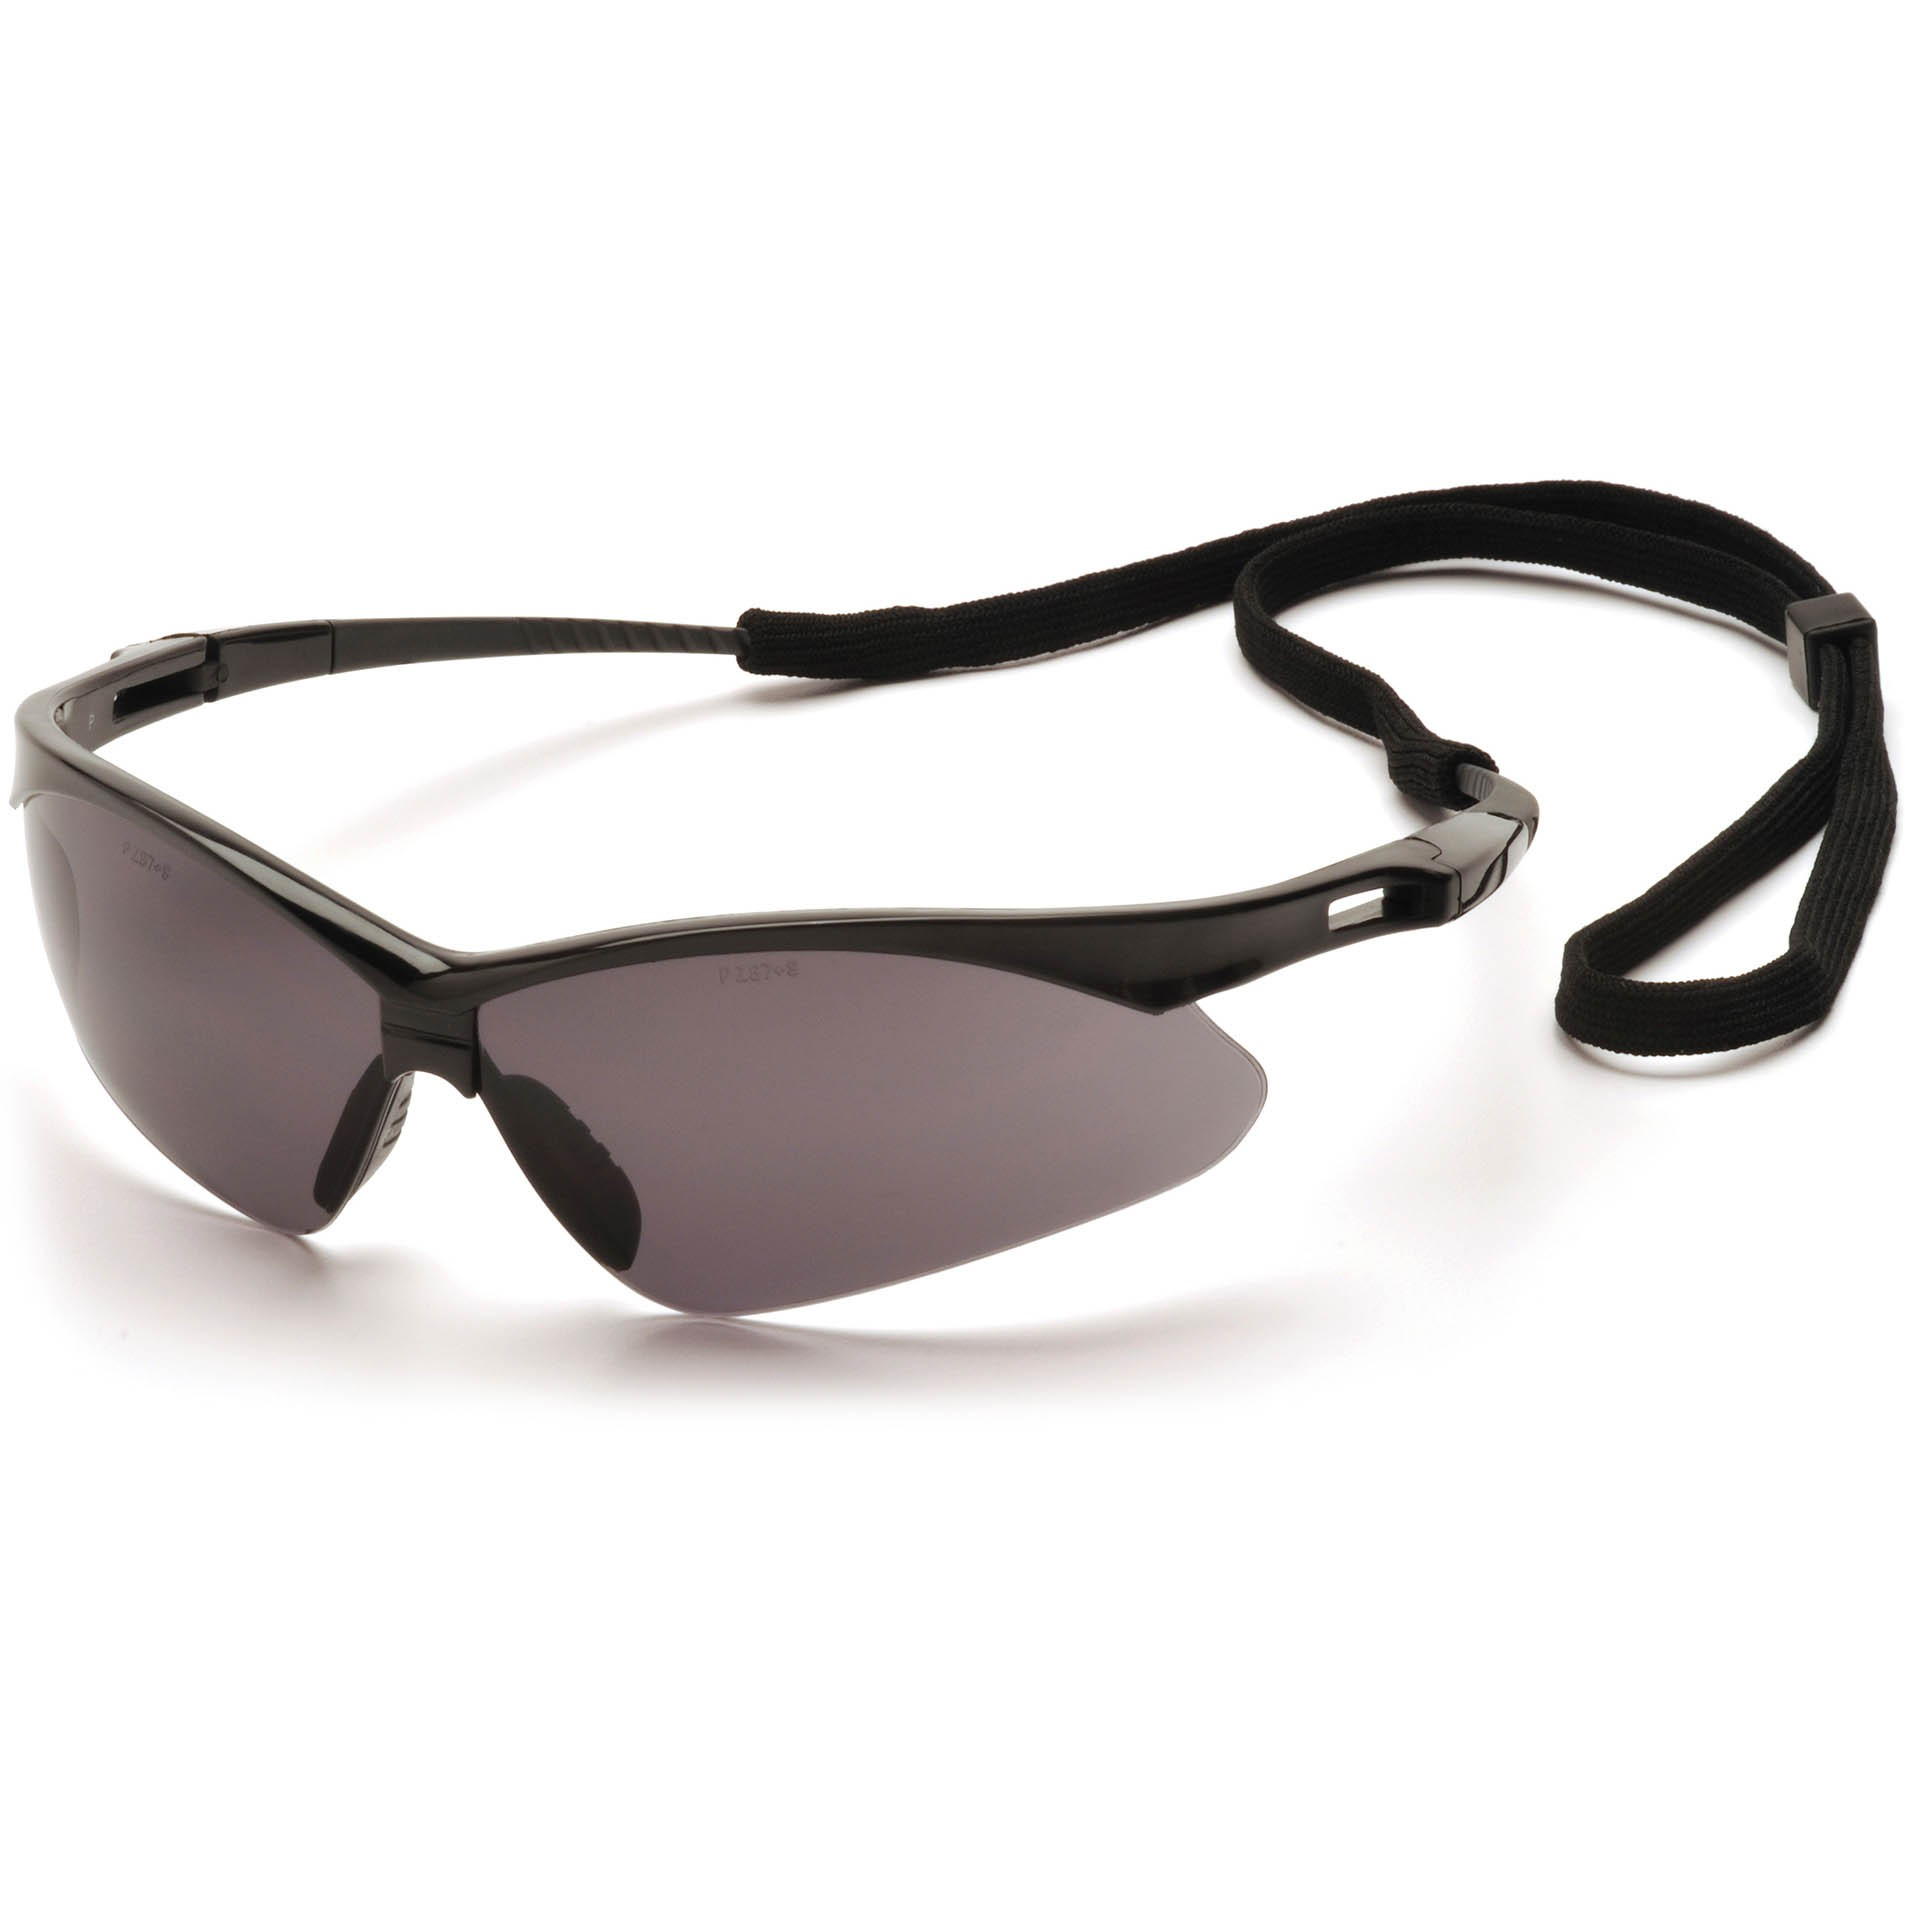 Black Frame Safety Glasses : Pyramex PMXTREME Safety Glasses - Black Frame - Gray Lens ...